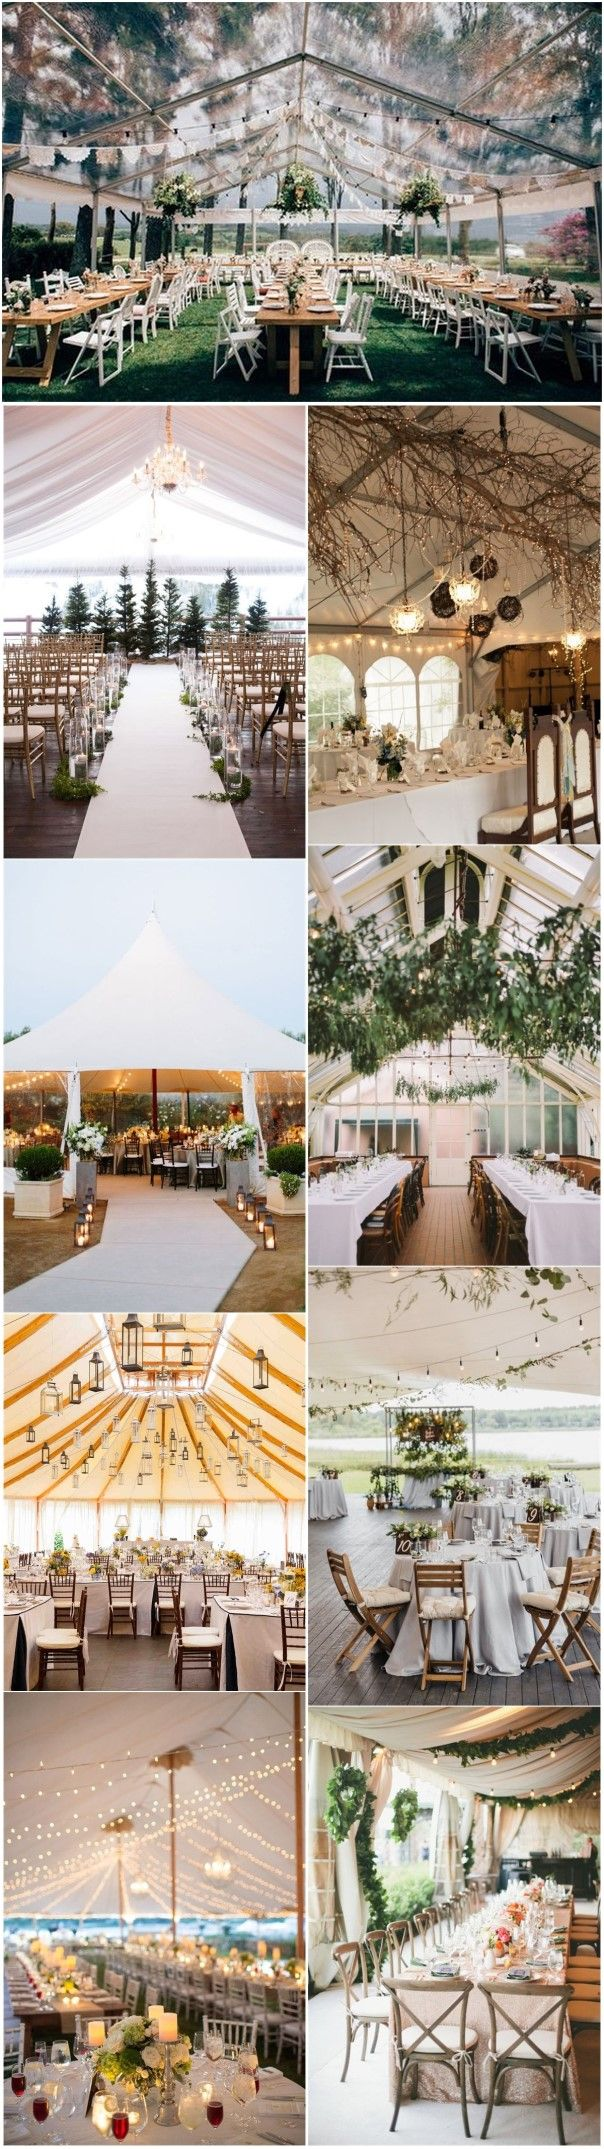 22 Outdoor Wedding Tent Decoration Ideas Every